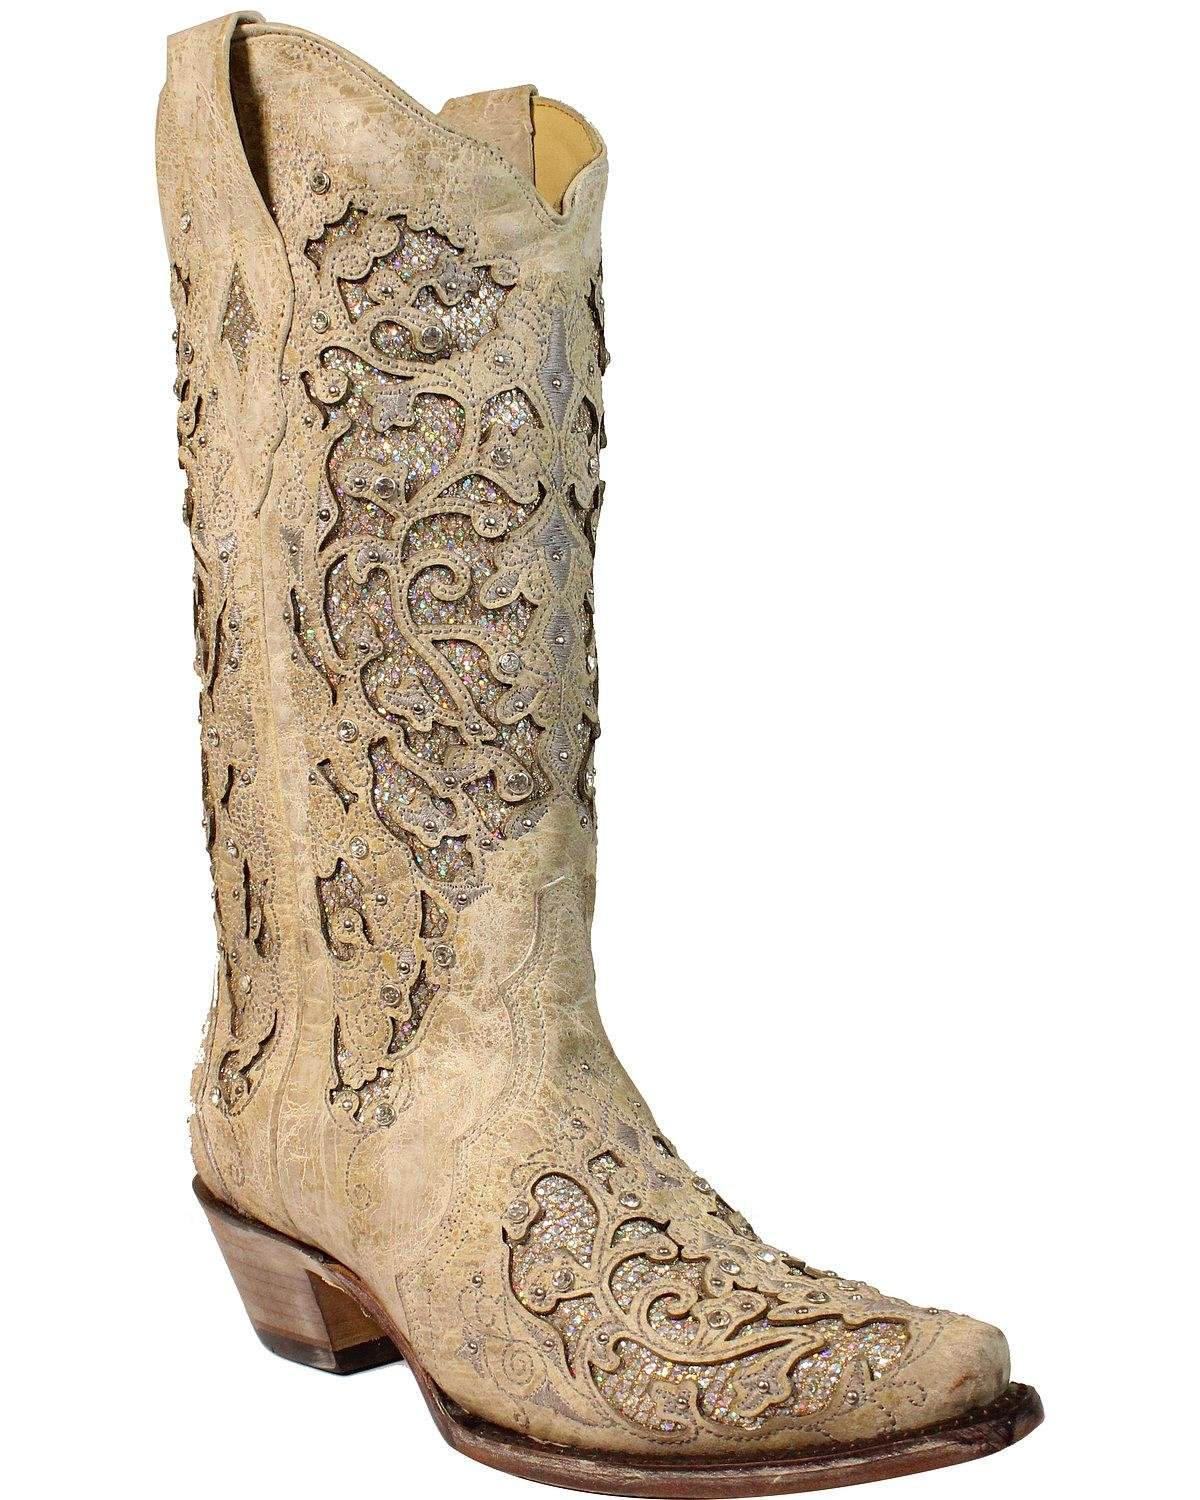 Corral Women's Glitter Inlay and Crystals Wedding Boot Snip Toe White 10.5 M